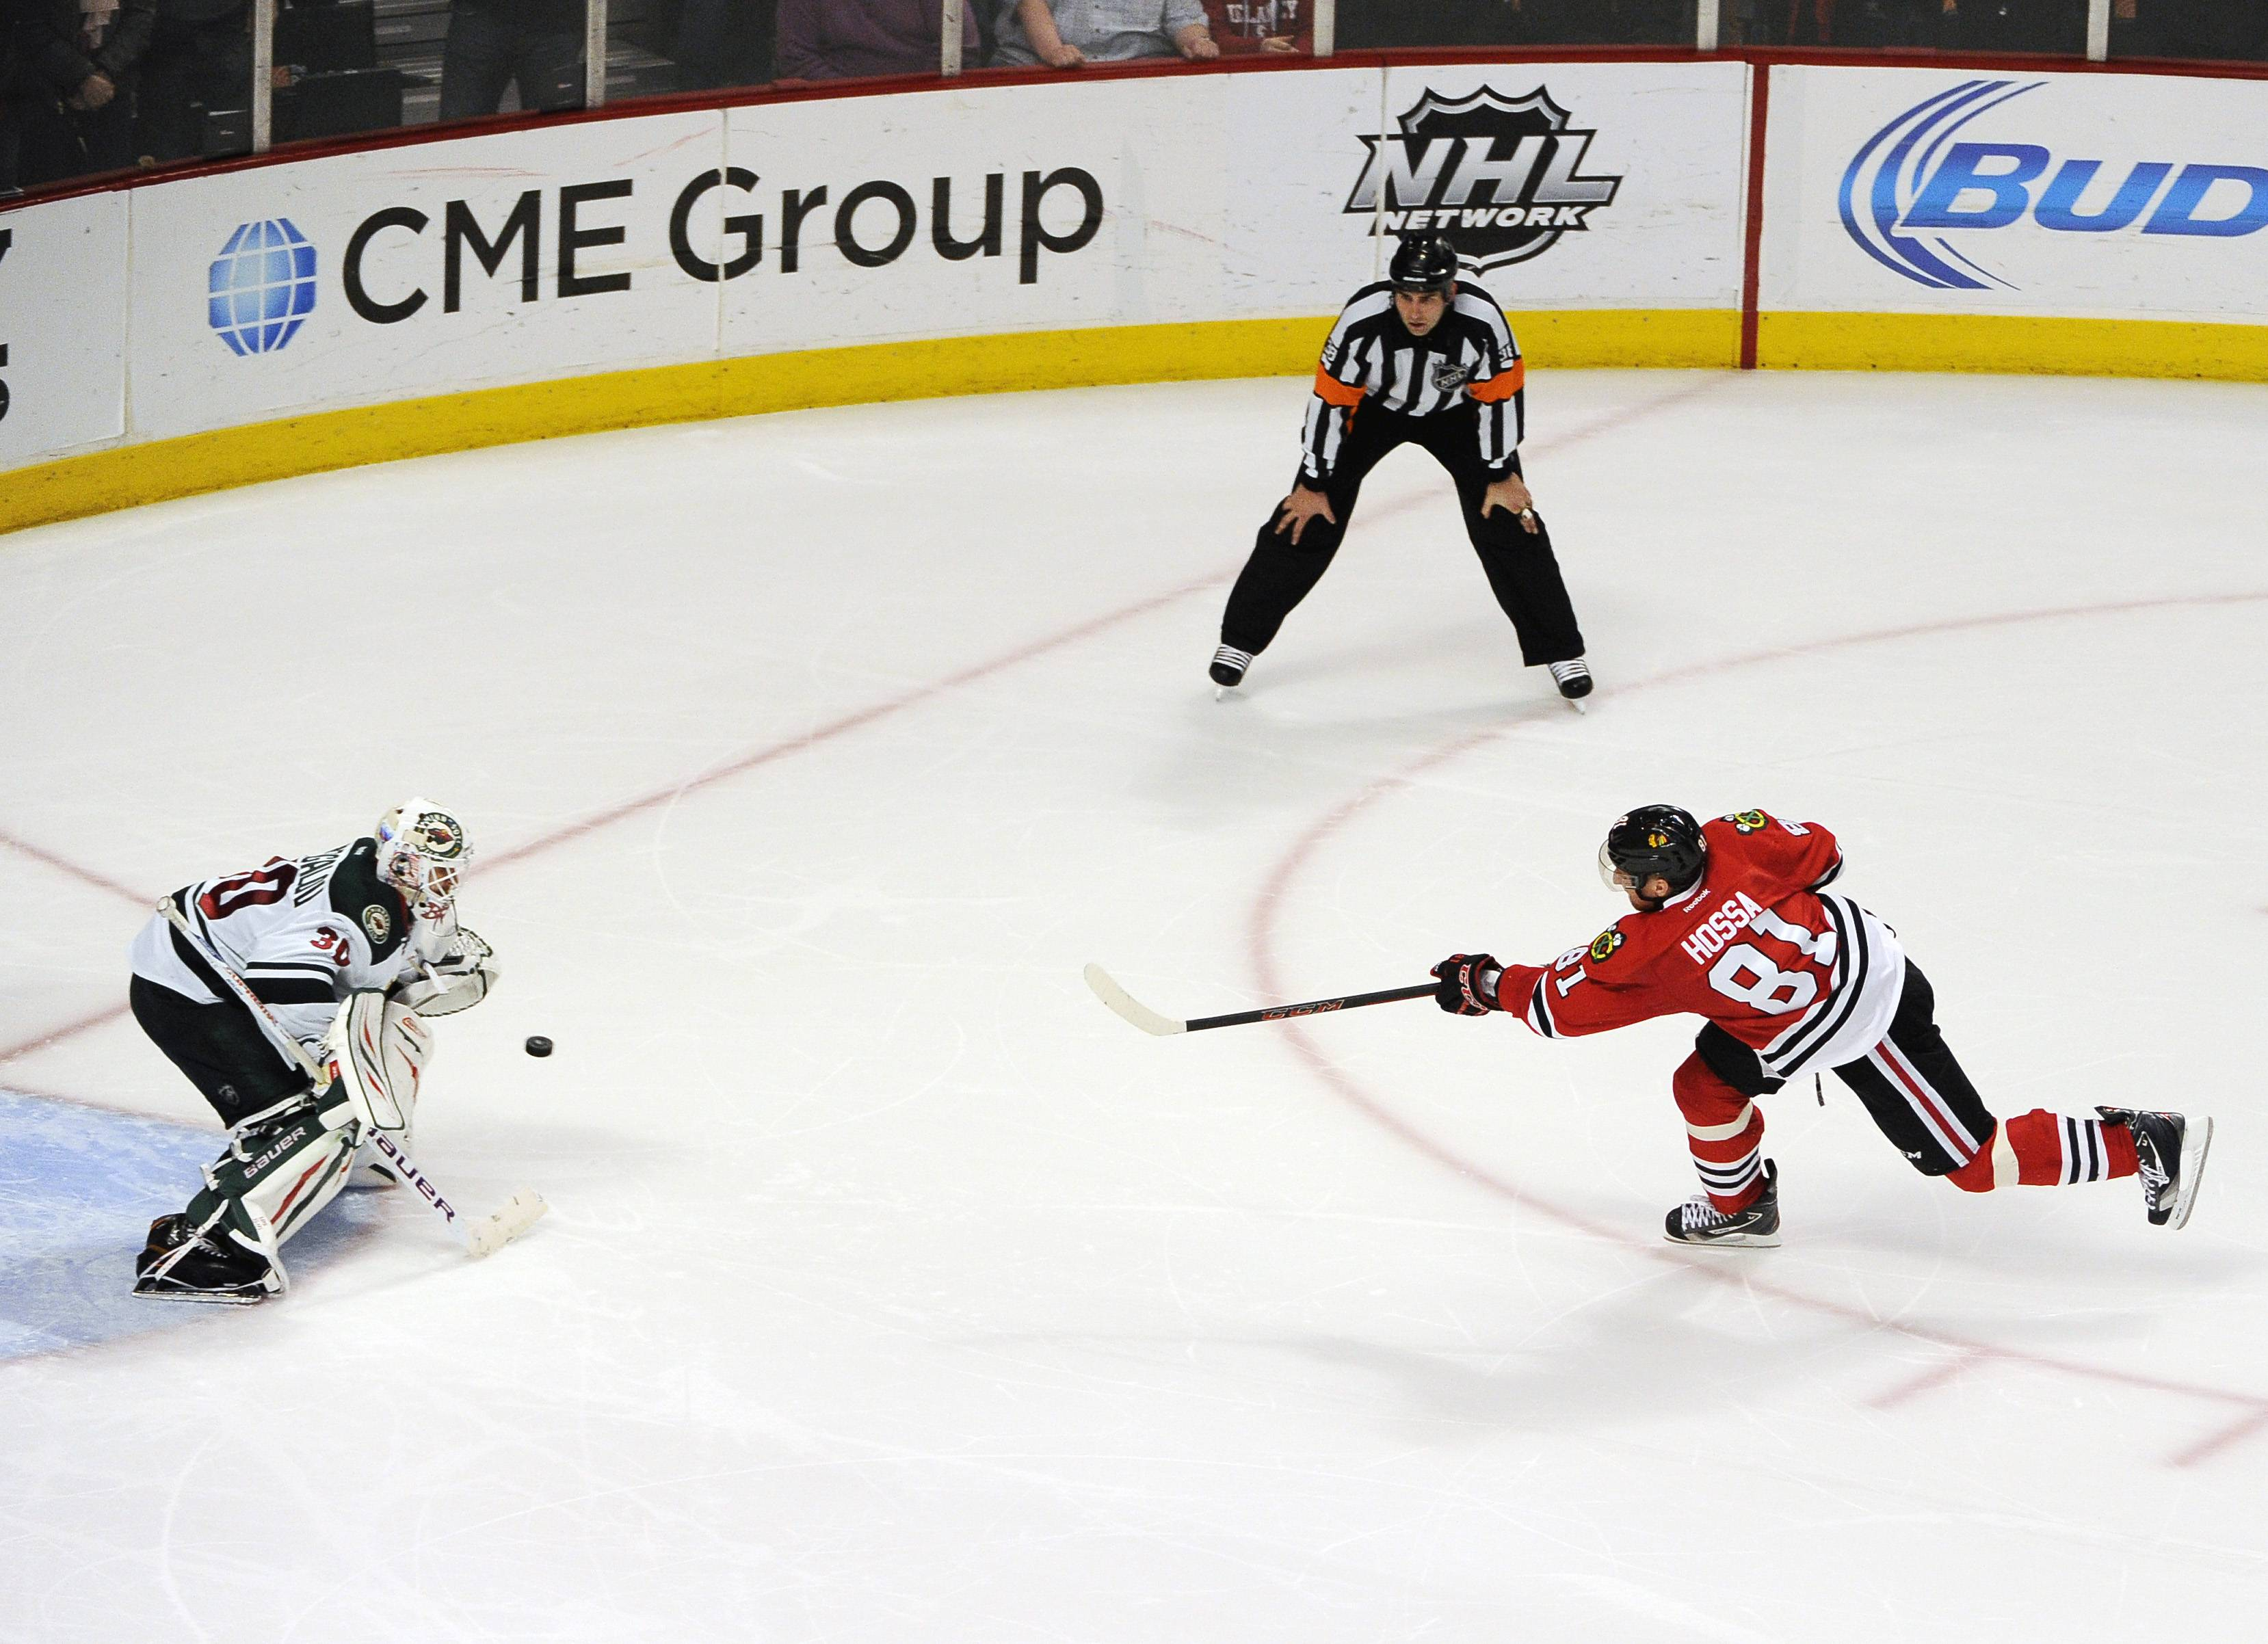 Blackhawks' Marian Hossa (81) scores the game winning goal on Minnesota Wild goalie Ilya Bryzgalov in a shootout during an NHL hockey game in Chicago, Thursday, April 3, 2014. The Blackhawks won 3-2. (AP Photo/David Banks)